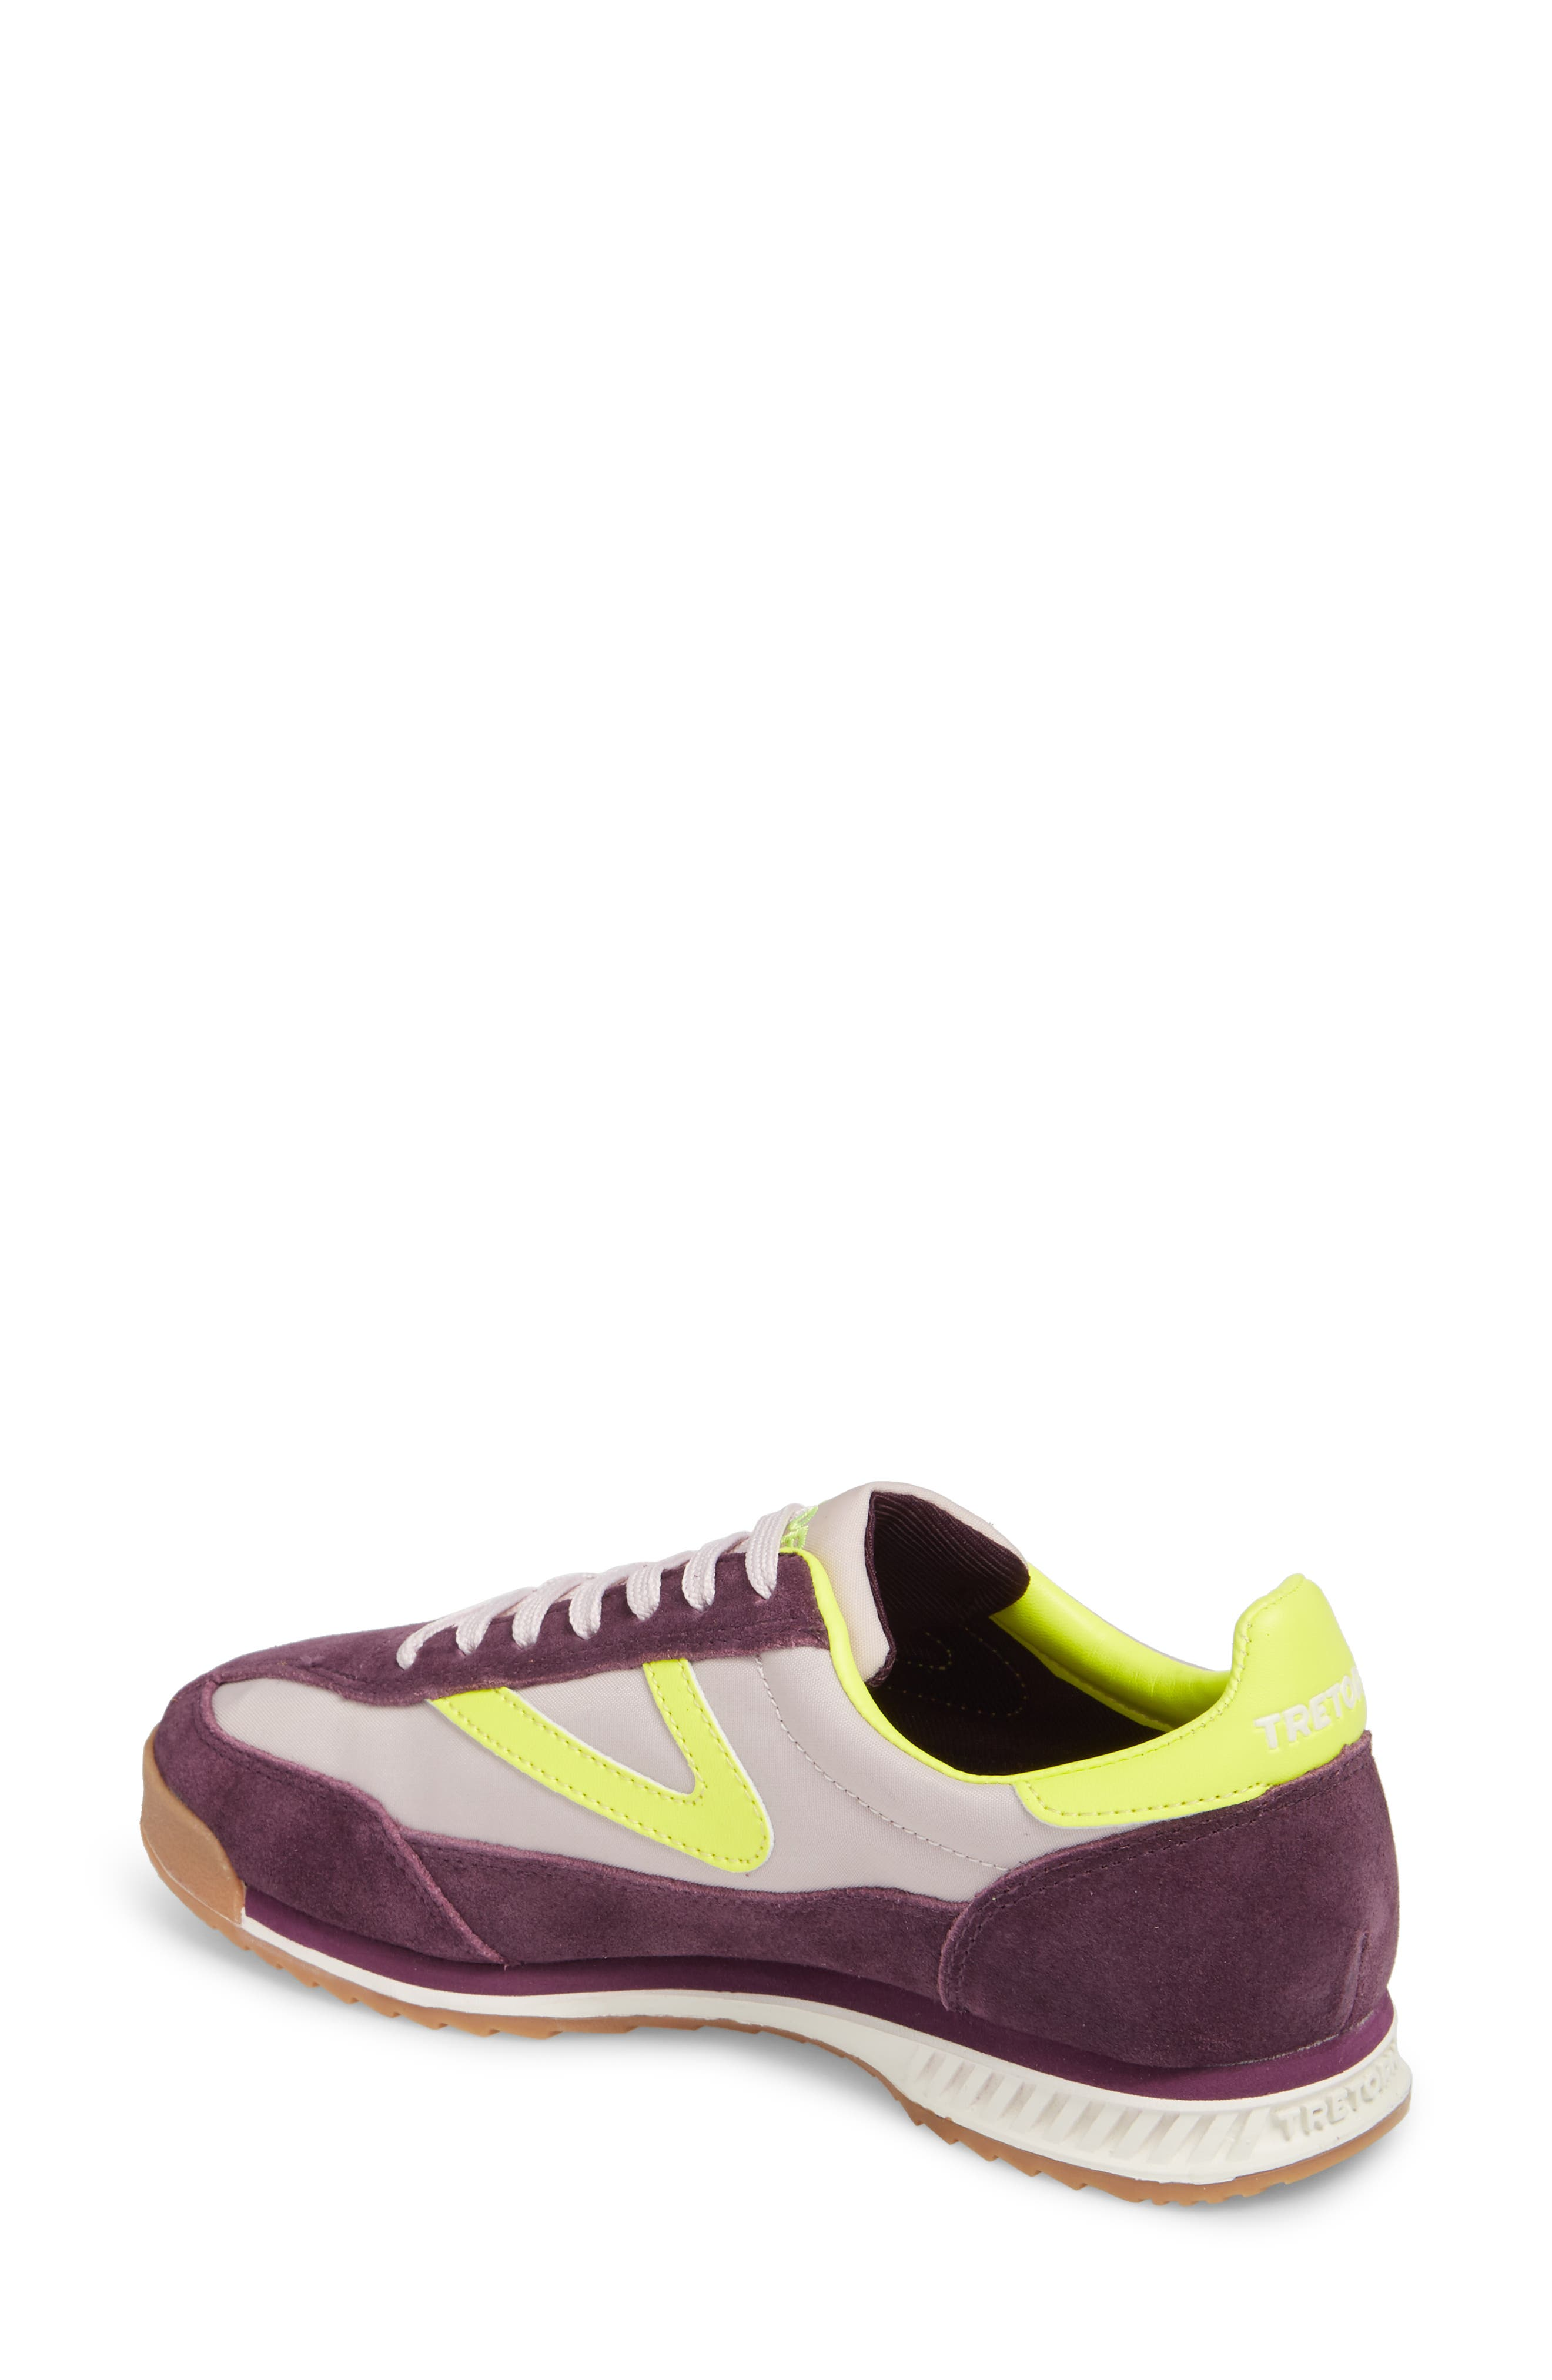 Rawlins 2 Sneaker,                             Alternate thumbnail 2, color,                             Eggplant/ Summer Lilac/ Yellow